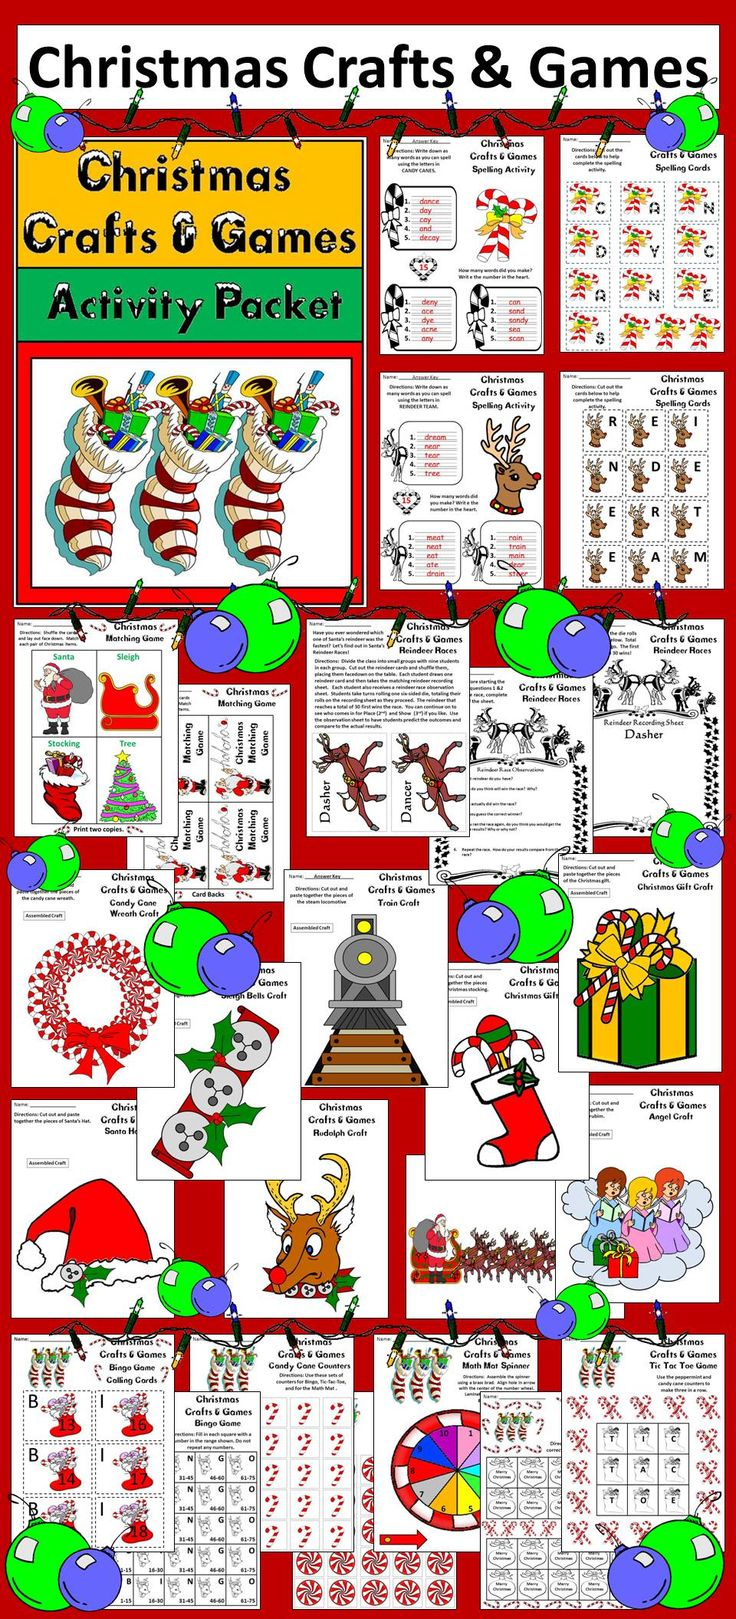 Christmas Crafts and Games: Packet full of fun activities and crafts for the Christmas season. Contents include: * 9 Christmas Crafts * 2 Spelling Activities & Cards * Reindeer Race Dice/Card Game * Christmas Reindeer Record Sheets * Reindeer Observation Sheet * Peppermint Spinner * Math Mat * 2 Set of Counters - Peppermints & Candy Canes * Tic Tac Toe Board * Bingo Card * Set of Bingo Caller Cards * Matching Card Game * Coloring Sheets